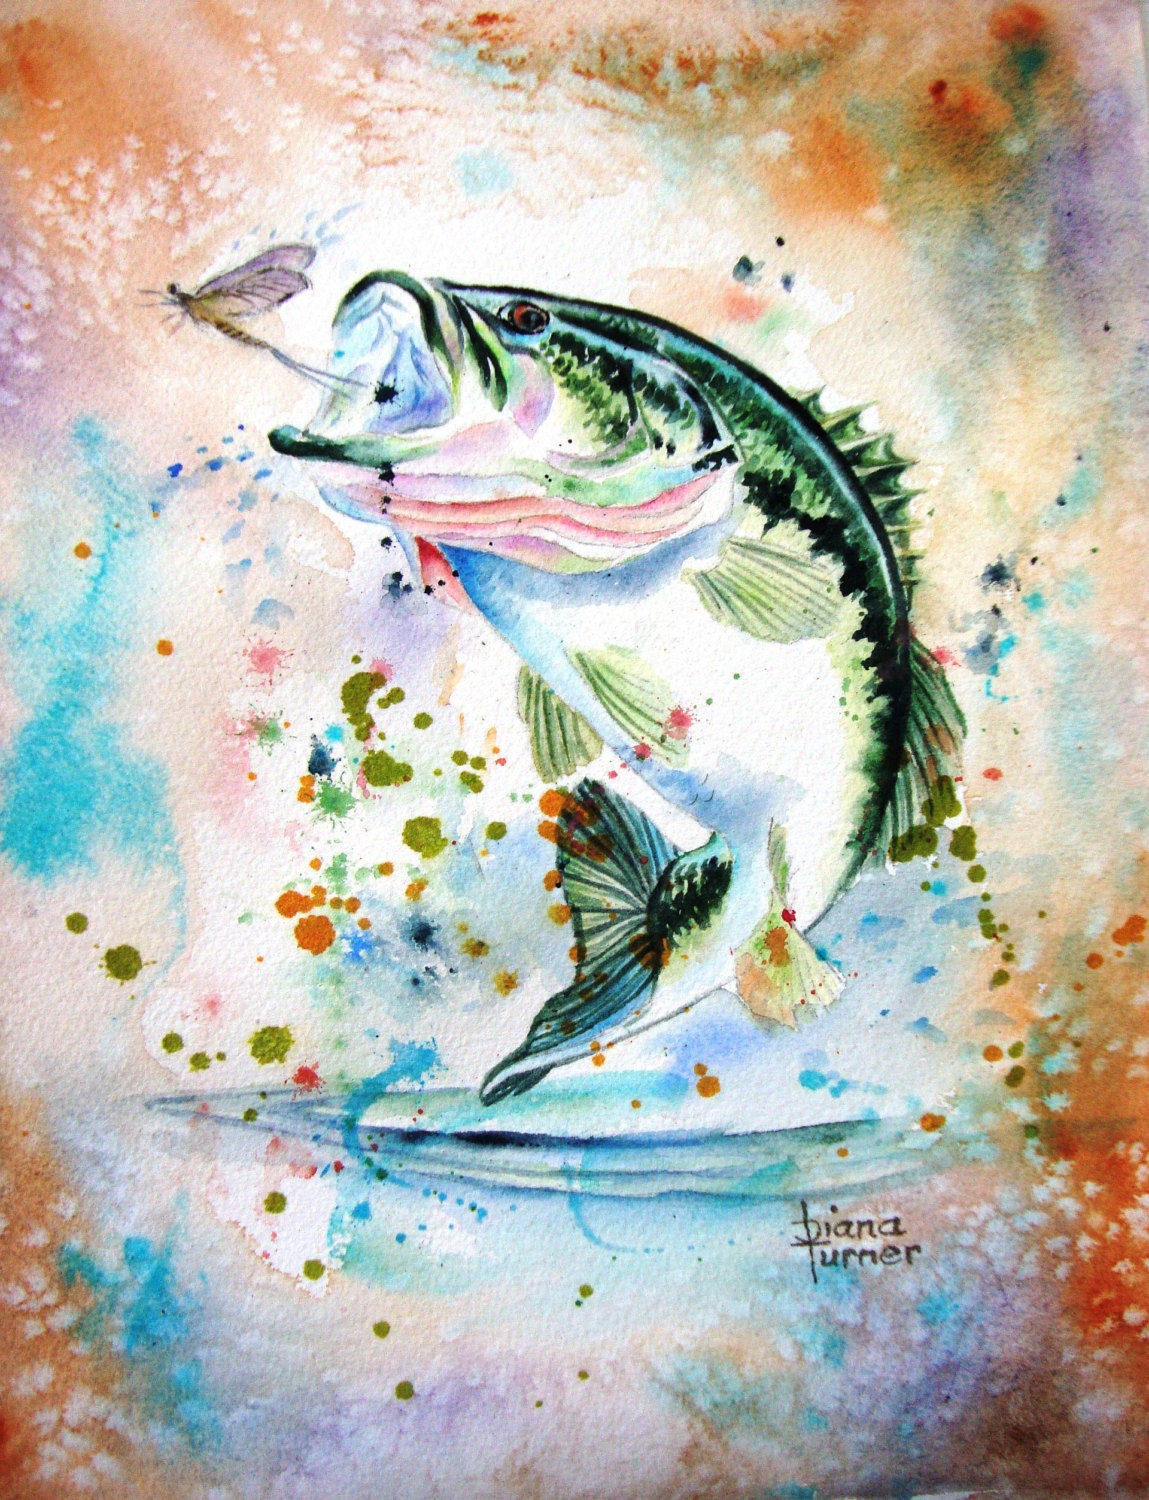 Fish Watercolor Painting Original Limited Edition Giclee Art Print From My Original Watercolor Painting Of A